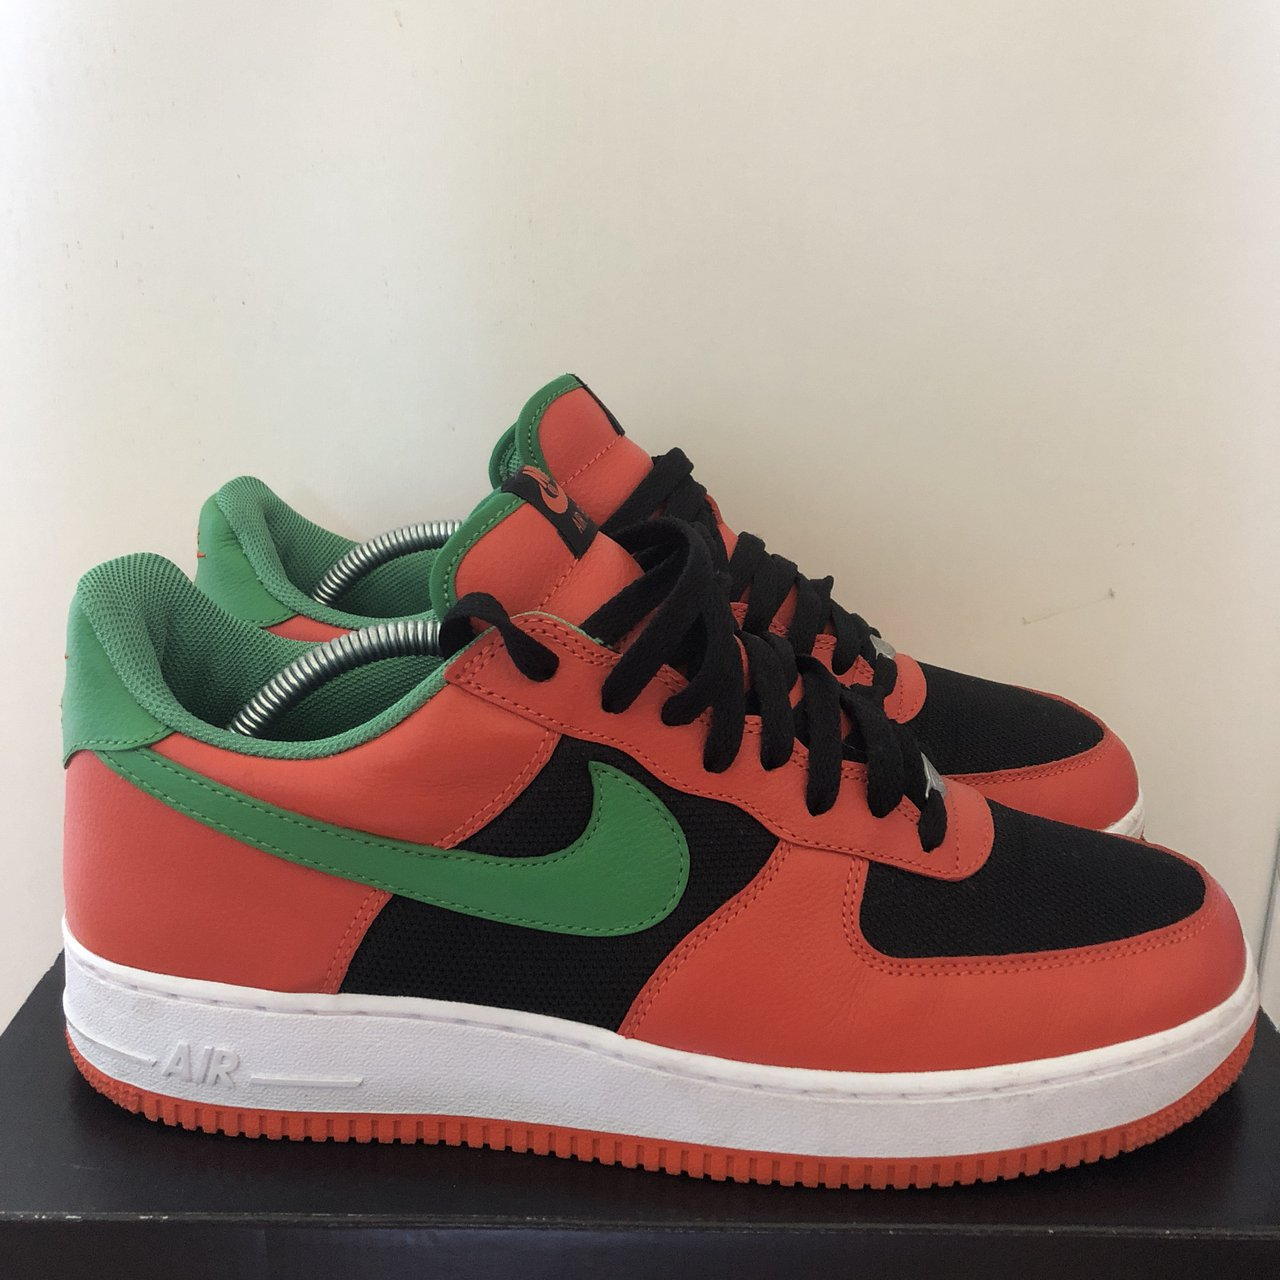 Nike Air Force 1 Low Carnival Orange From the 2017 Box + - Depop ce98479c64